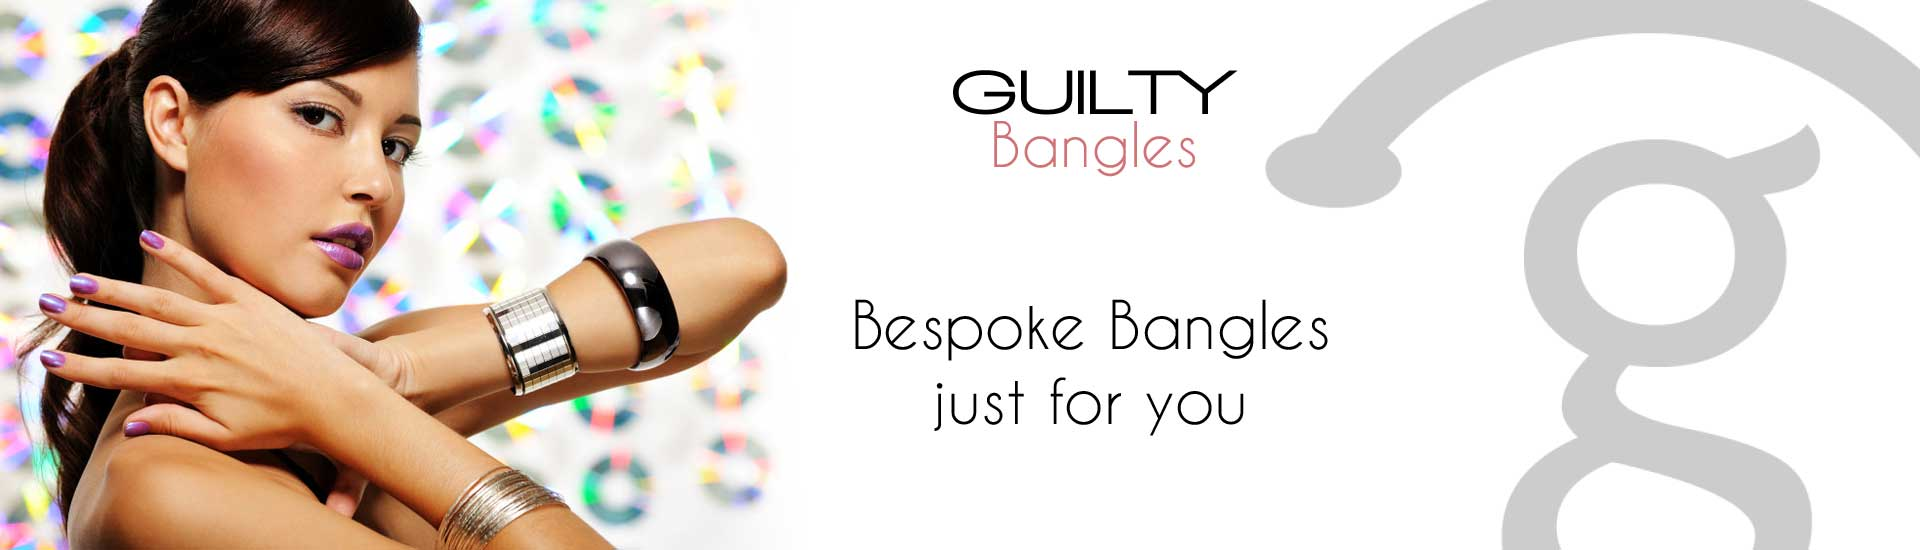 Bespoke Bangles for You